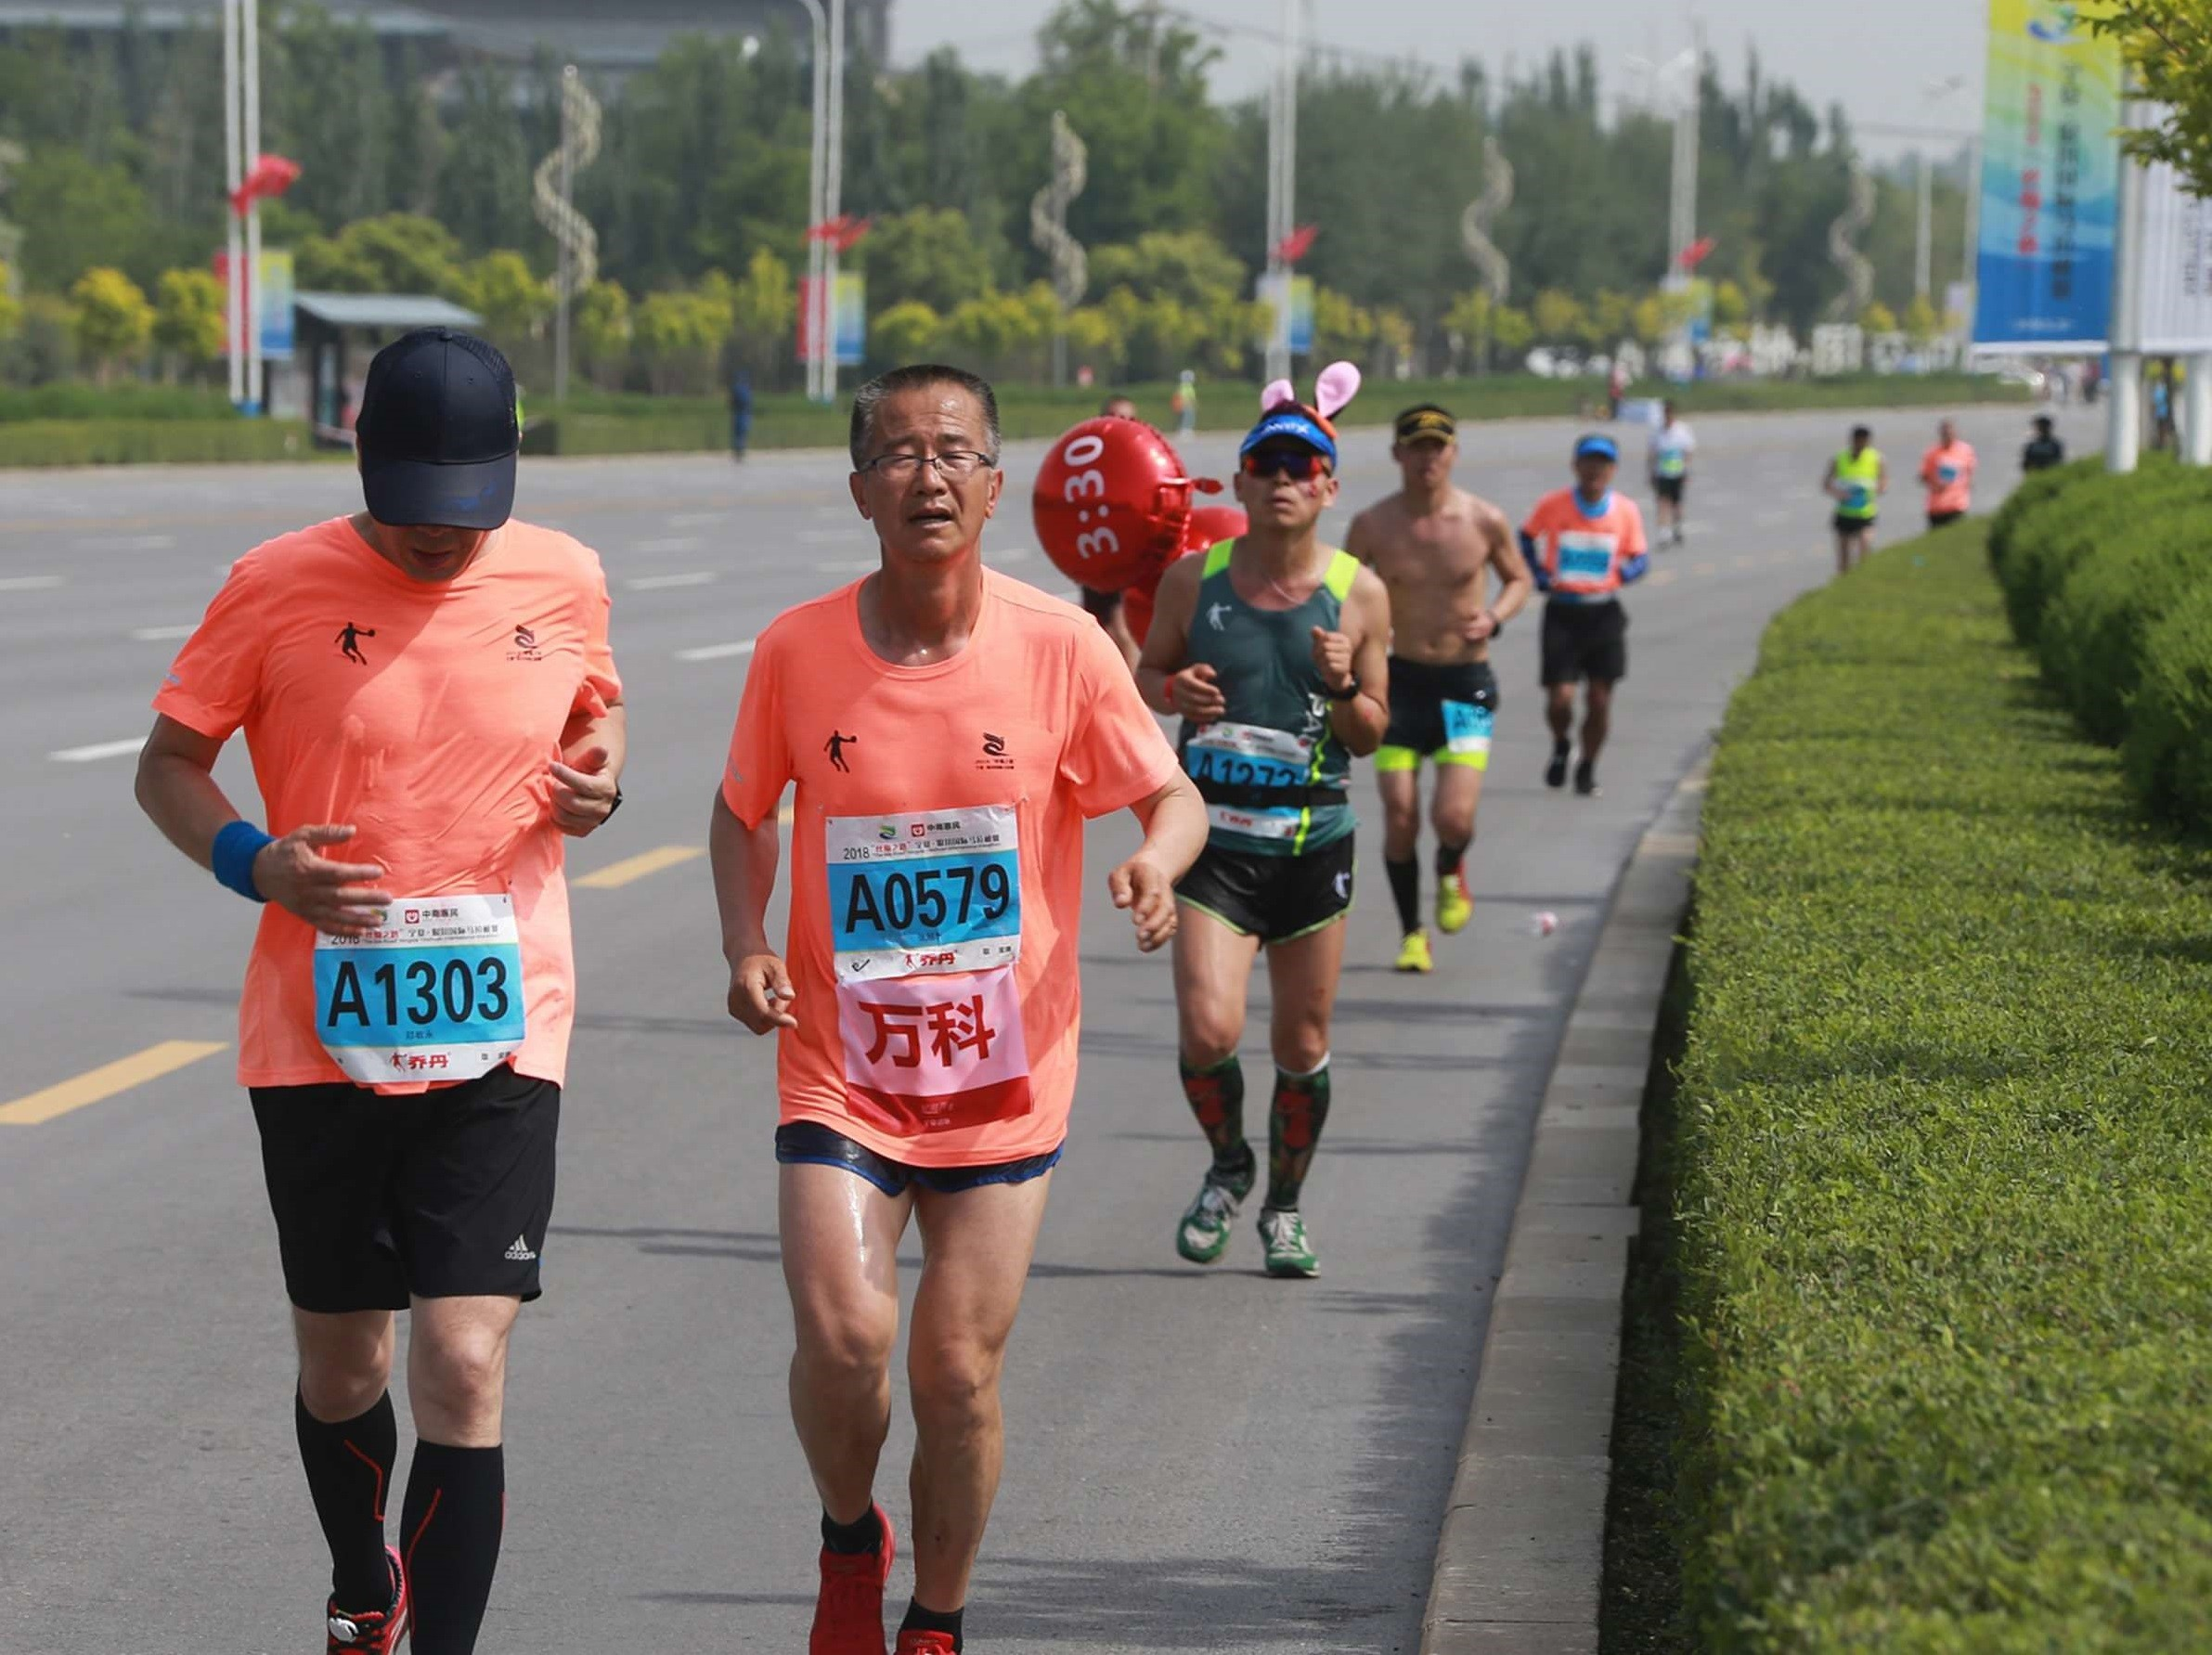 74-year-old Gu Dawo is the the oldest official pacemaker in Chinese marathon history